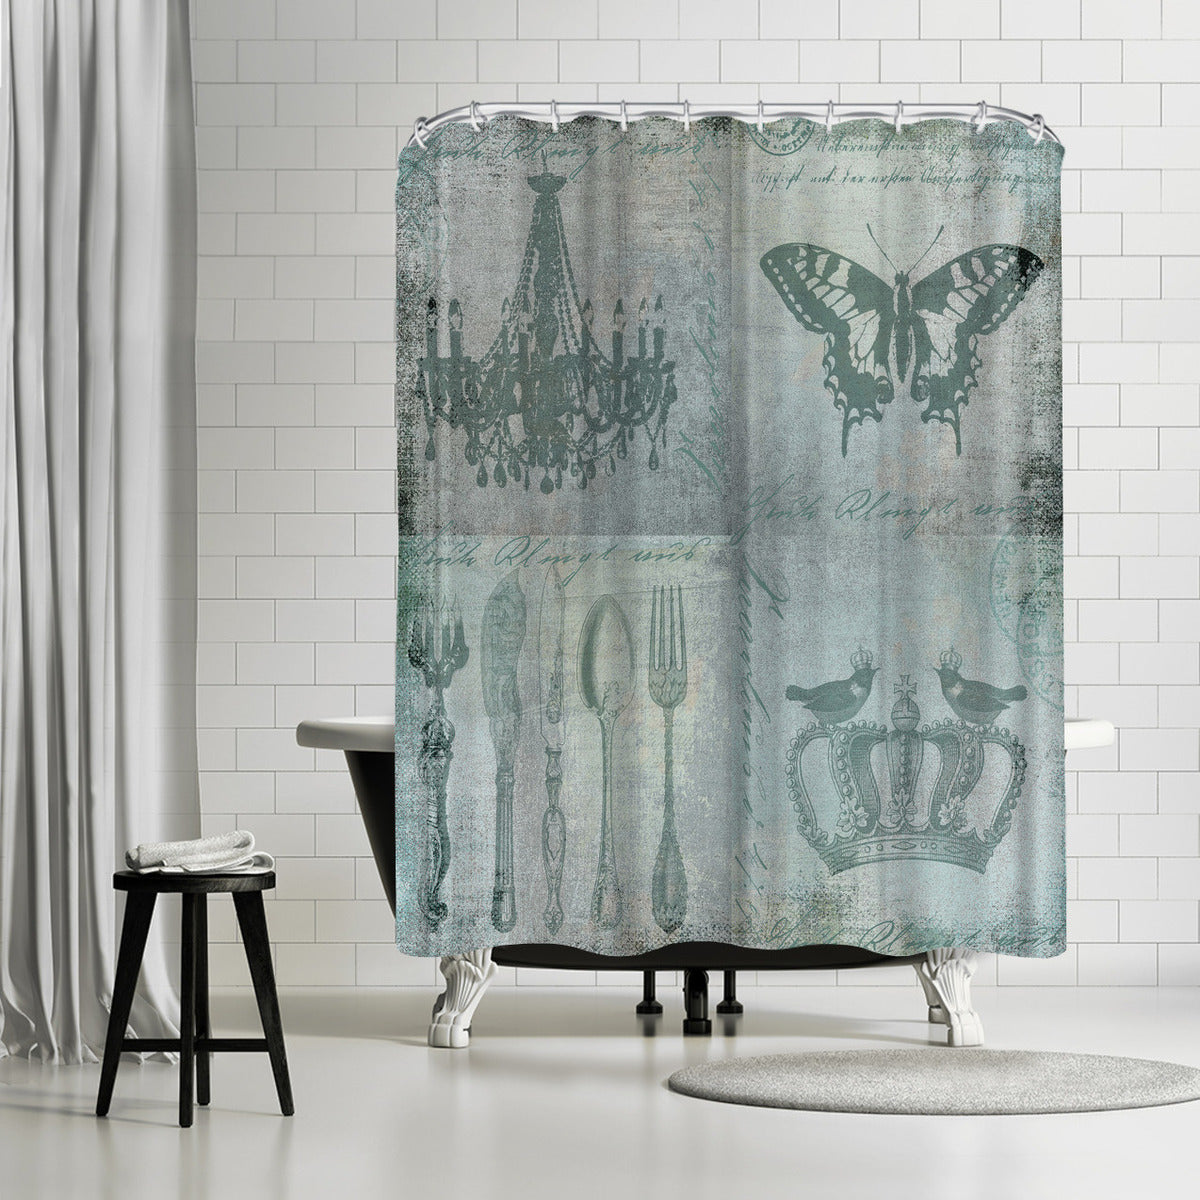 Teal Baroque by Lebens Art Shower Curtain -  - Americanflat